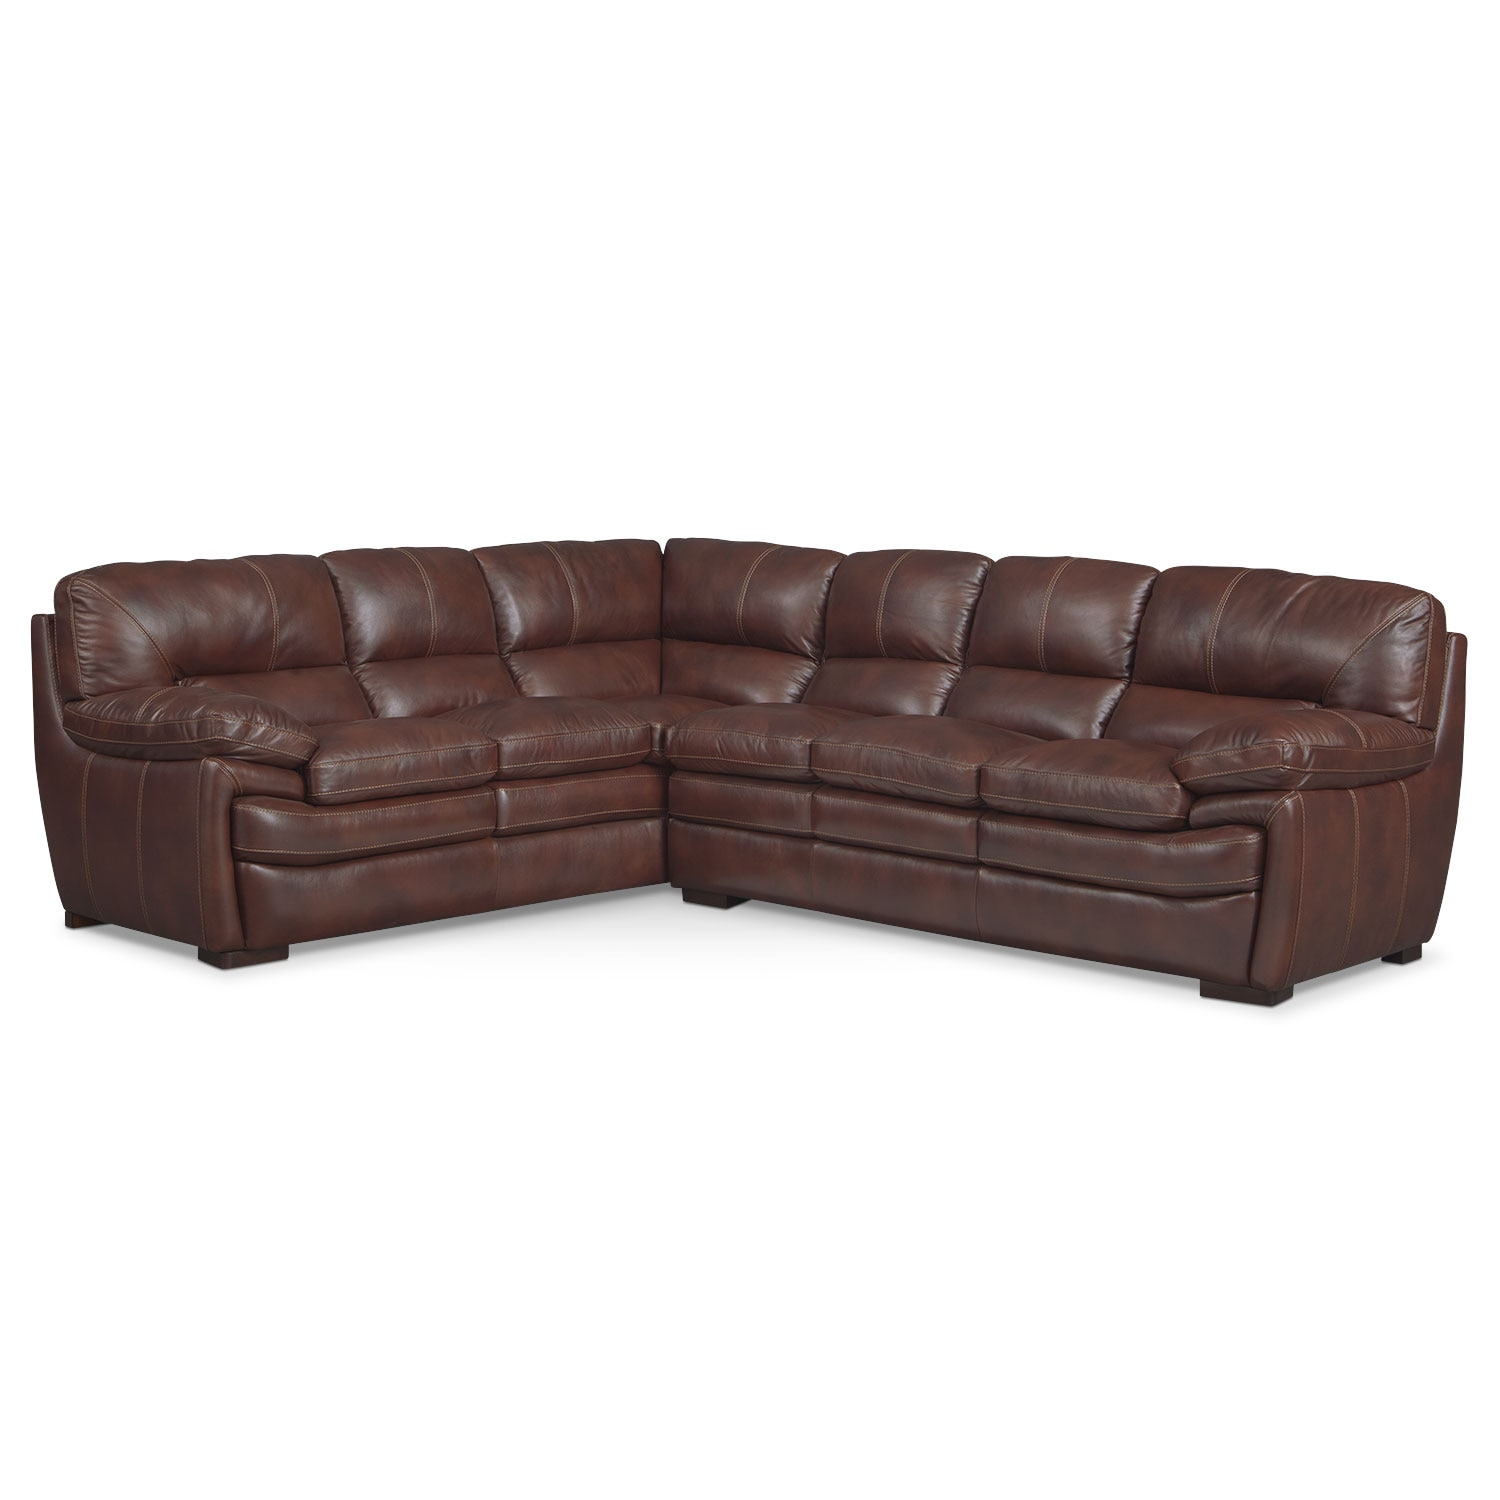 Living Room Furniture - Peyton Chestnut 2-Piece Sectional - Chestnut